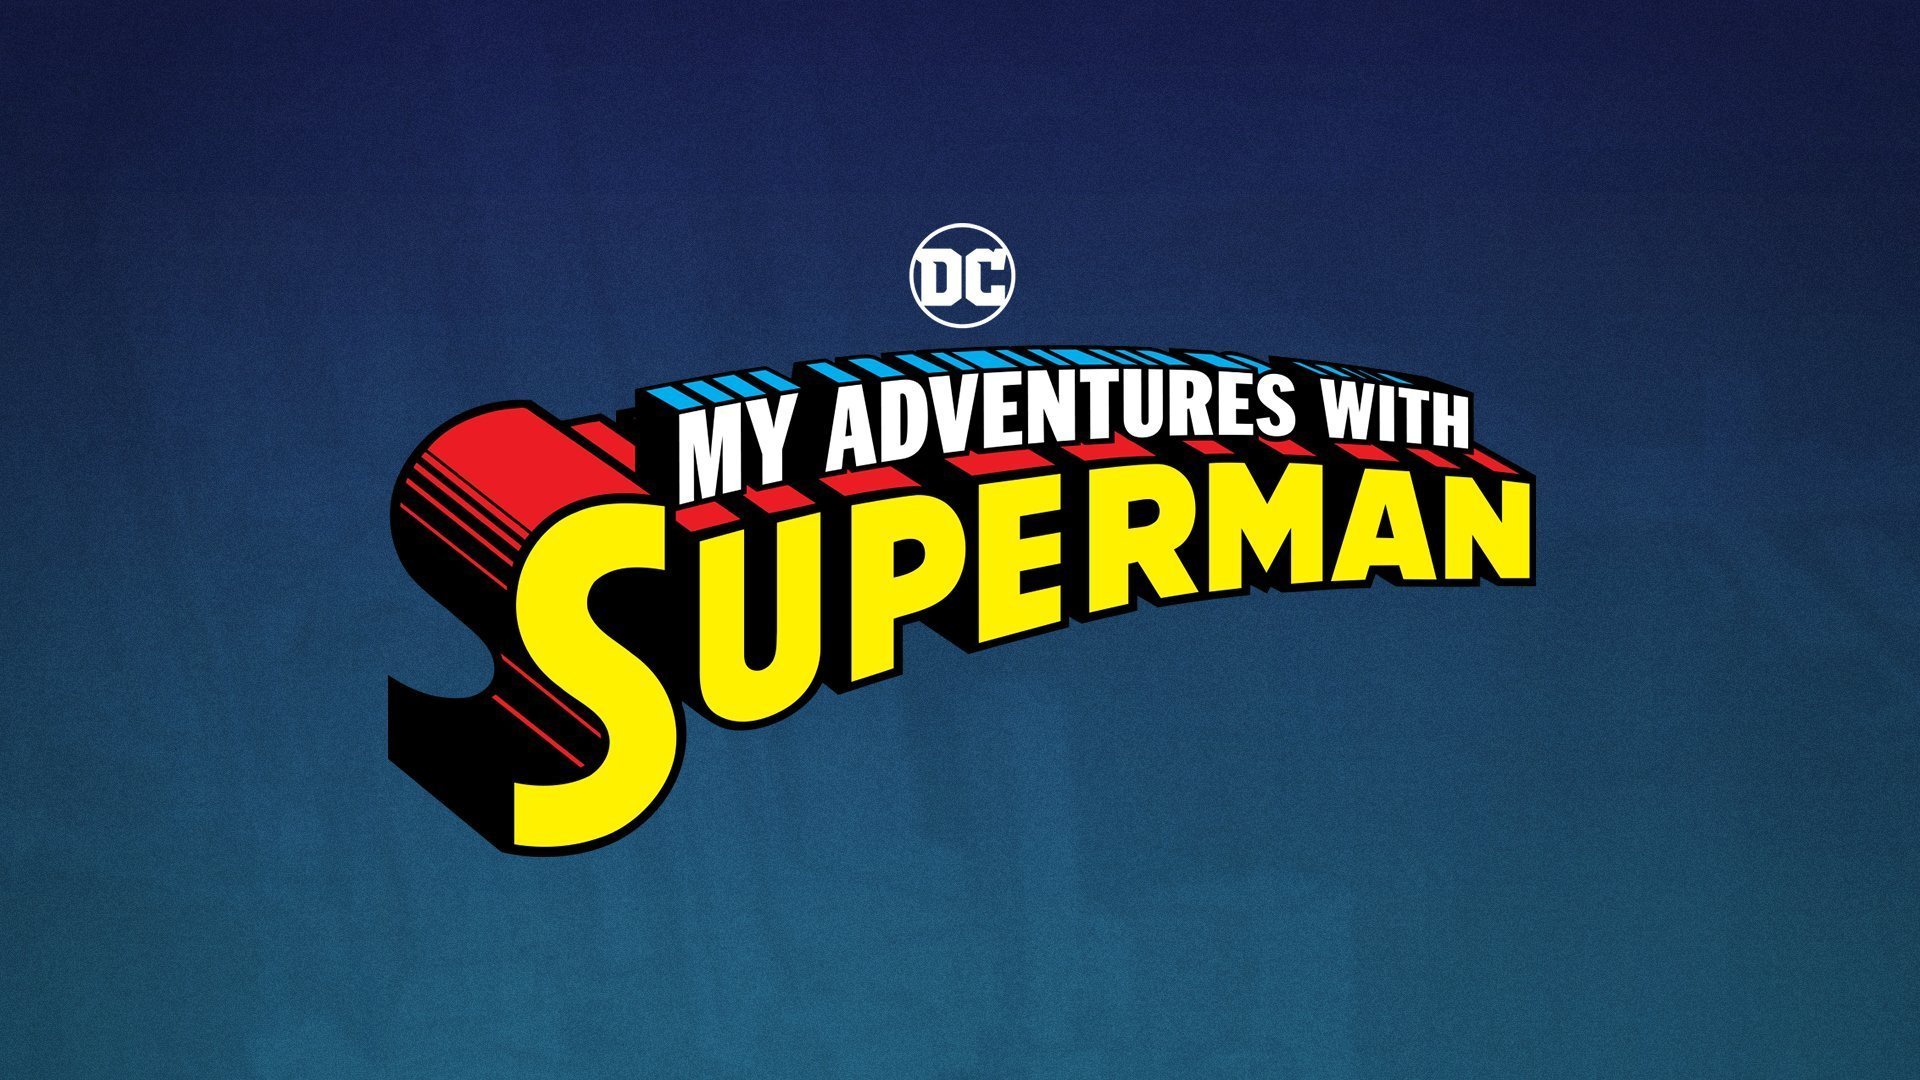 Le mie avventure con Superman hbo max, My Adventures With Superman